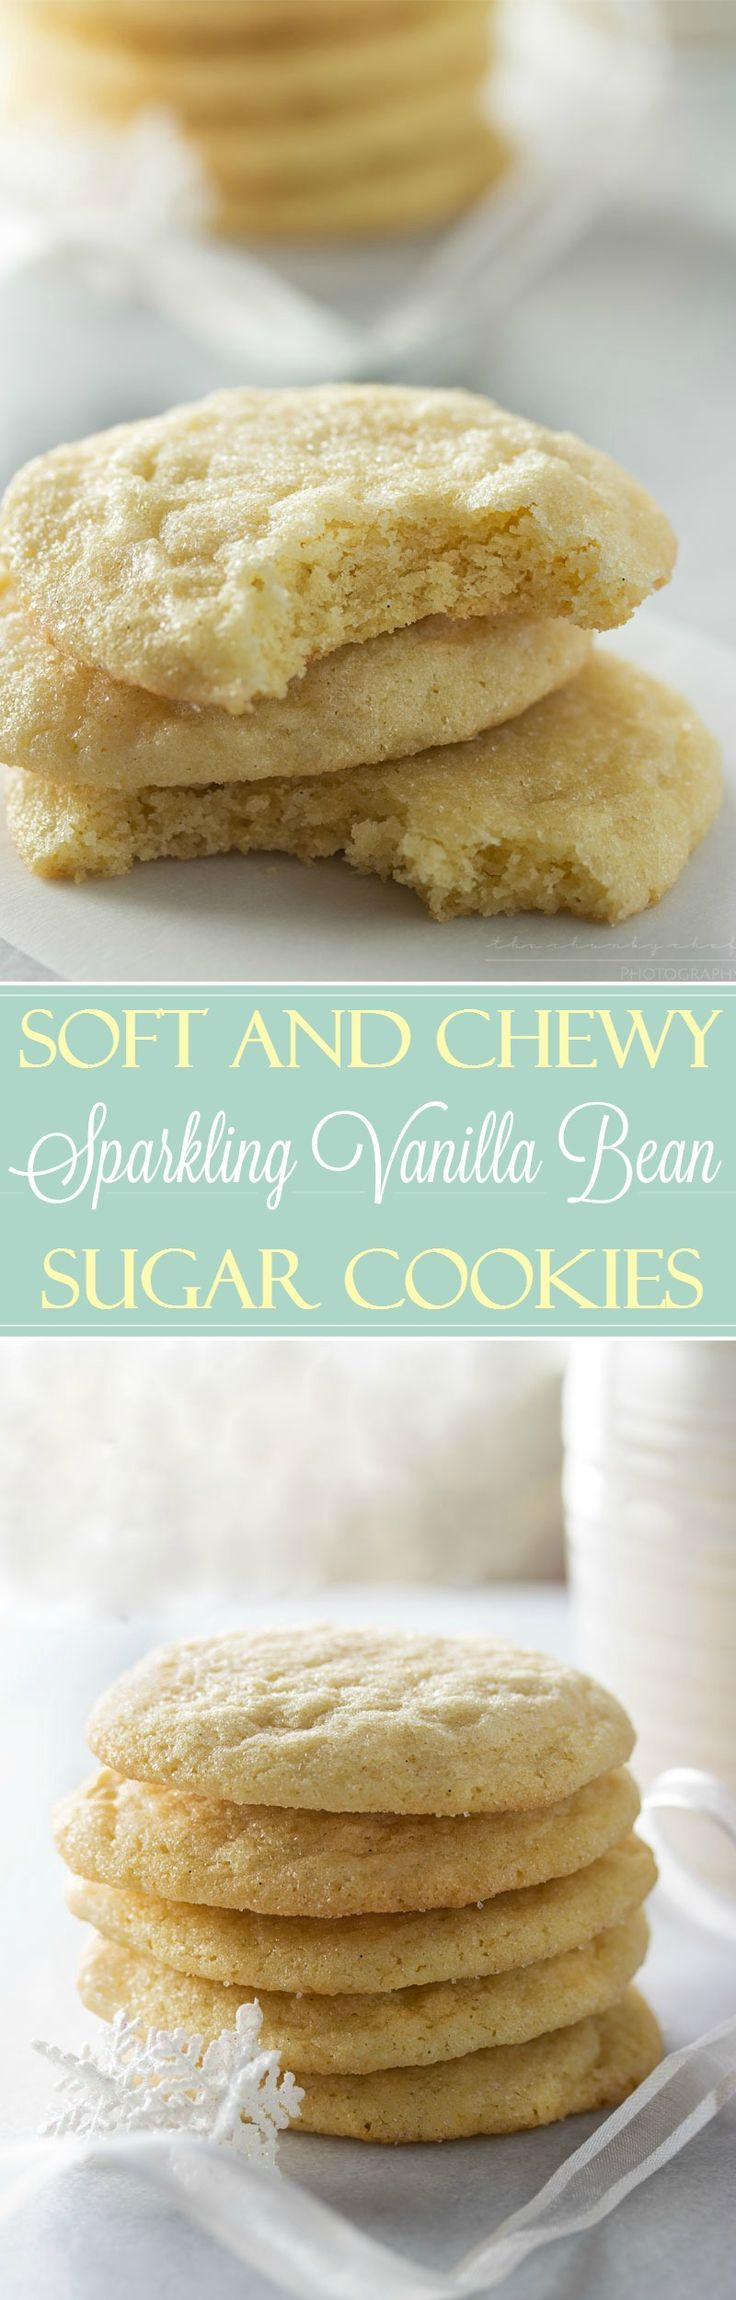 Soft Vanilla Bean Sugar Cookies   These vanilla bean sugar cookies are rolled in sugar for a sparkling appearance and a soft, light and chewy texture that will make these your new favorite!